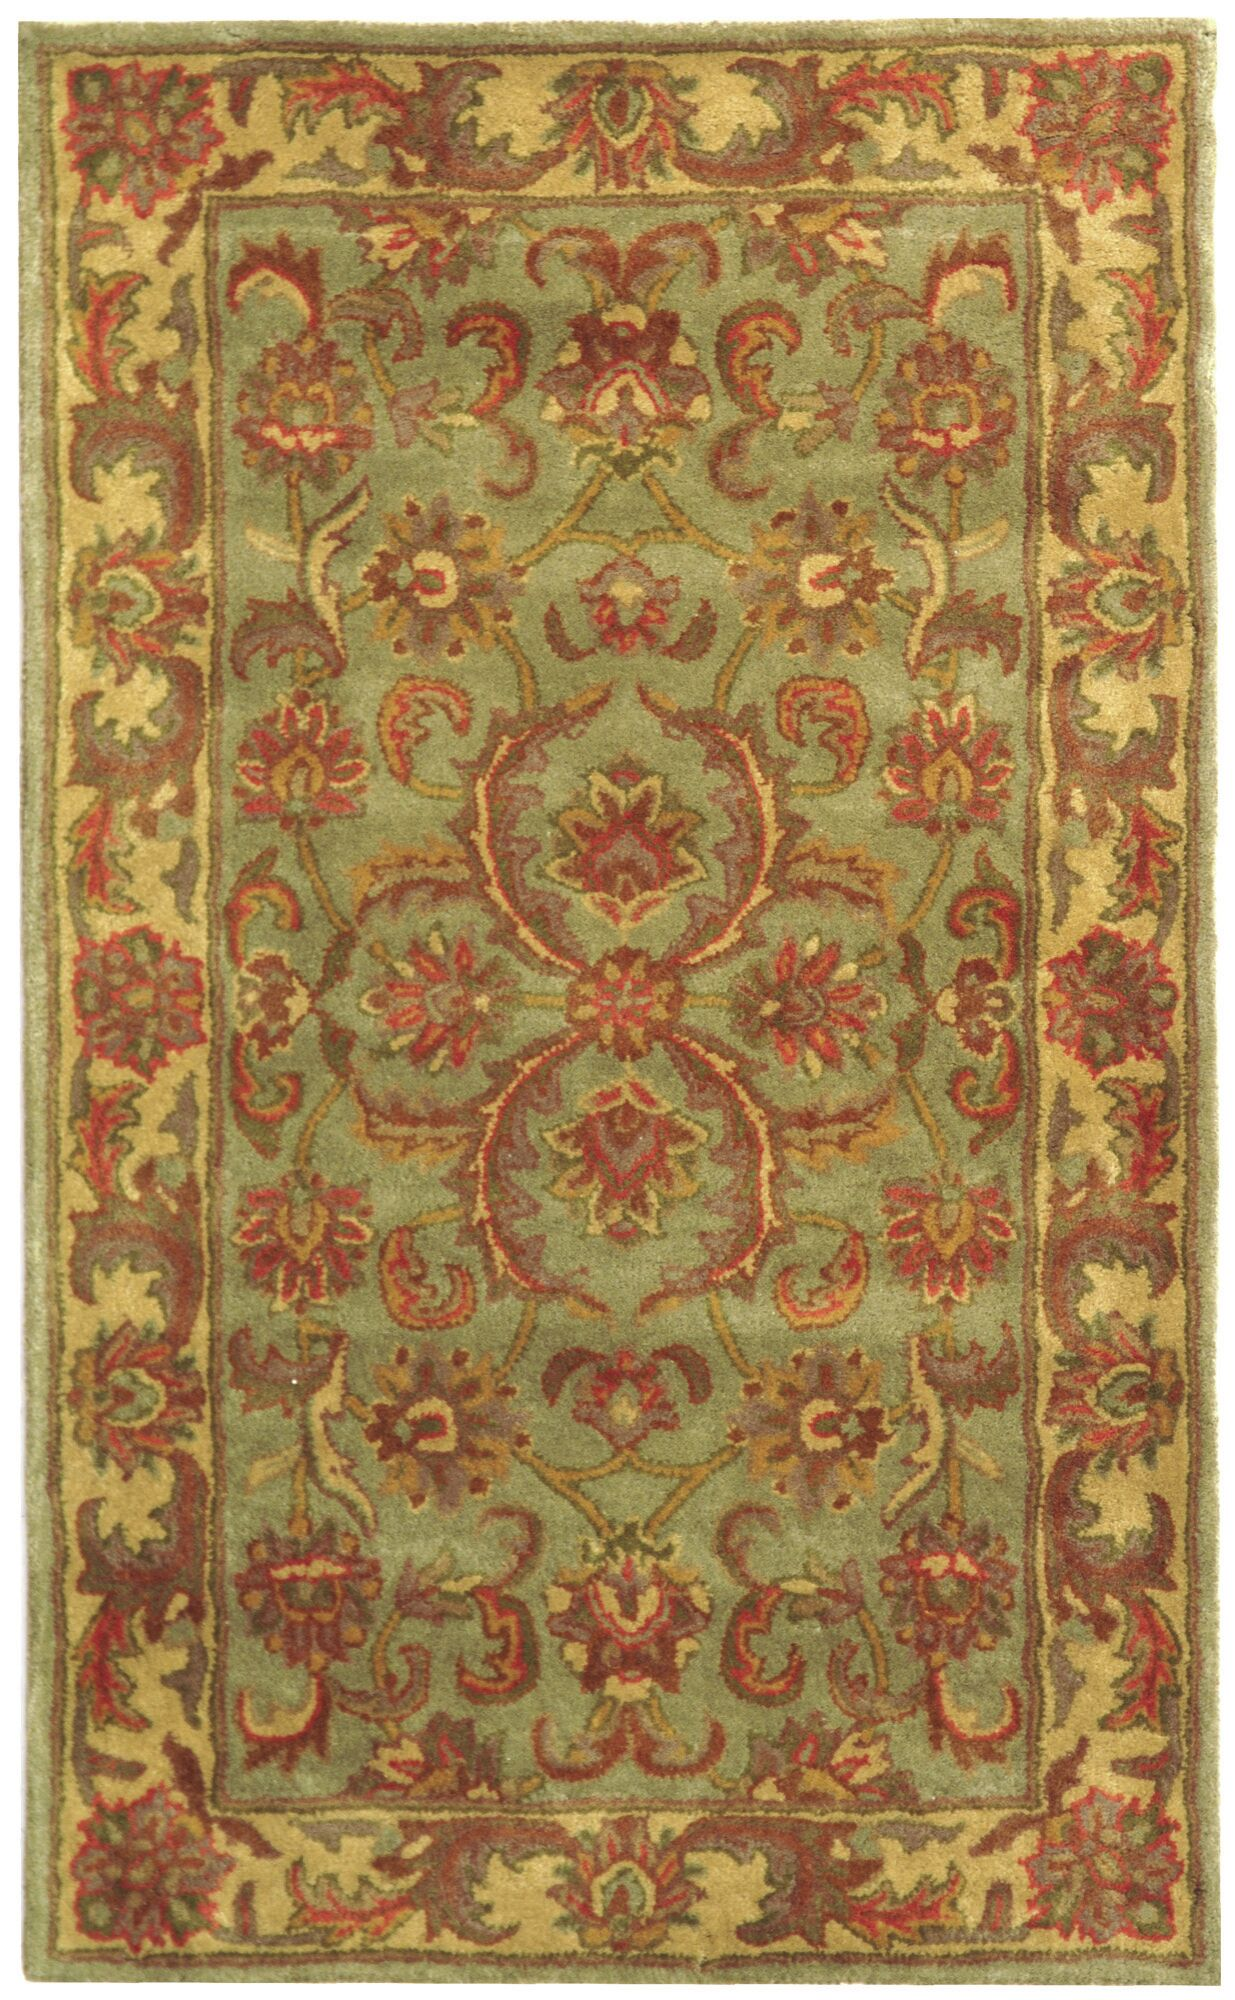 Taylor Hand-Tufted Wool Green/Gold Area Rug Rug Size: Rectangle 3' x 5'